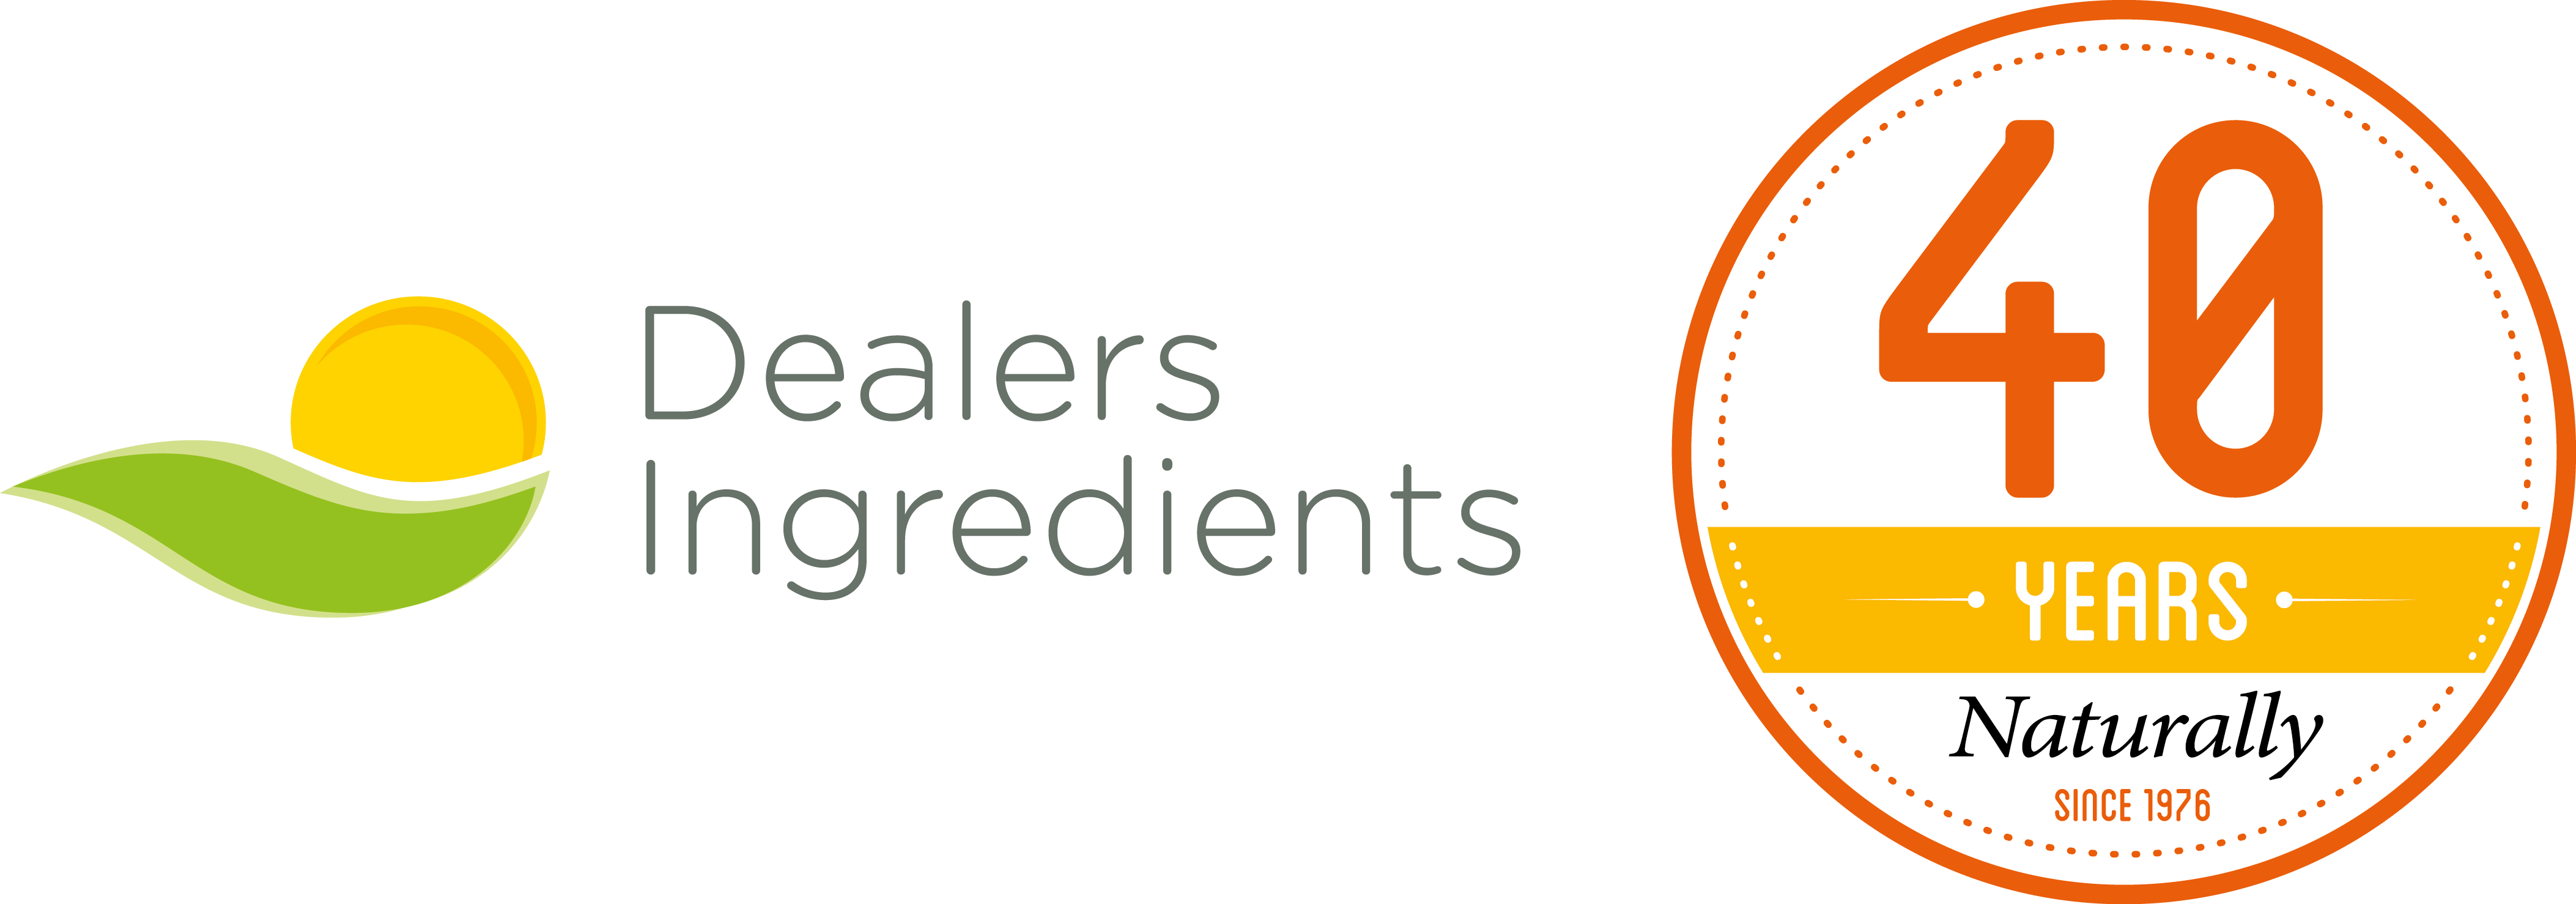 Dealers Ingredients celebrates 40 years